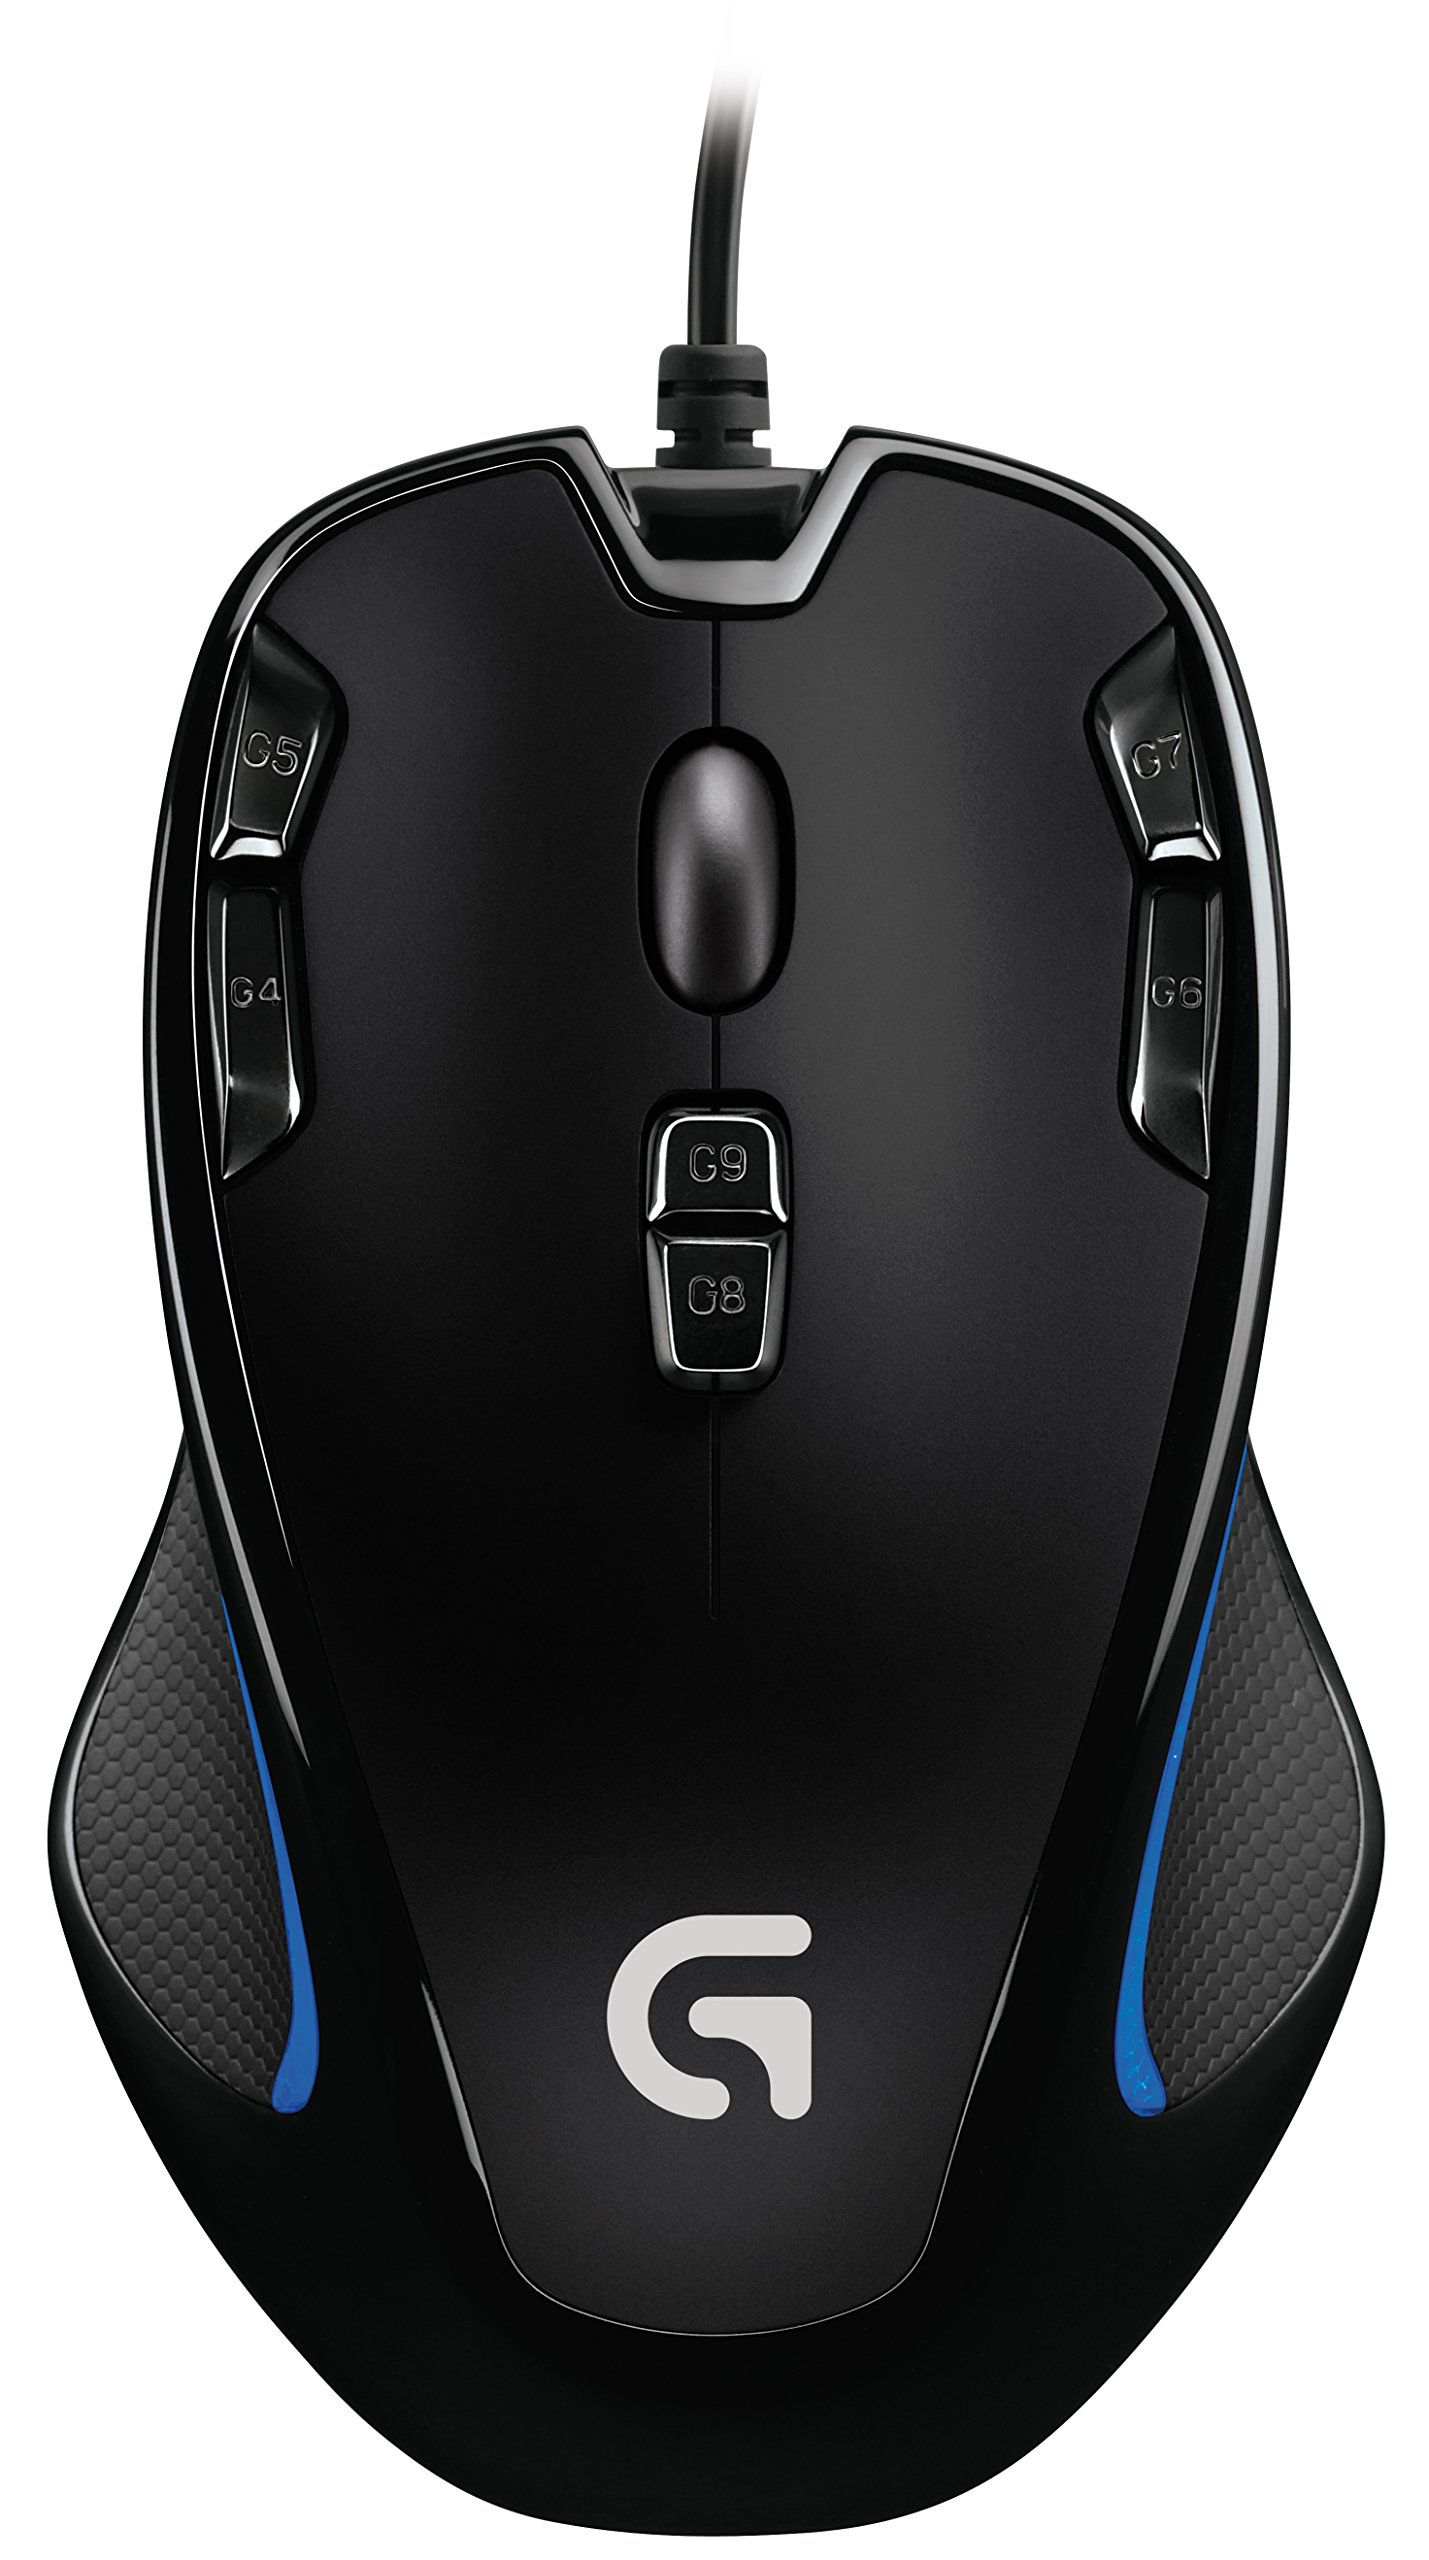 Logitech G300s Optical Ambidextrous  Gaming Mouse - 9 Programmable Buttons, Onboard Memory by Logitech G